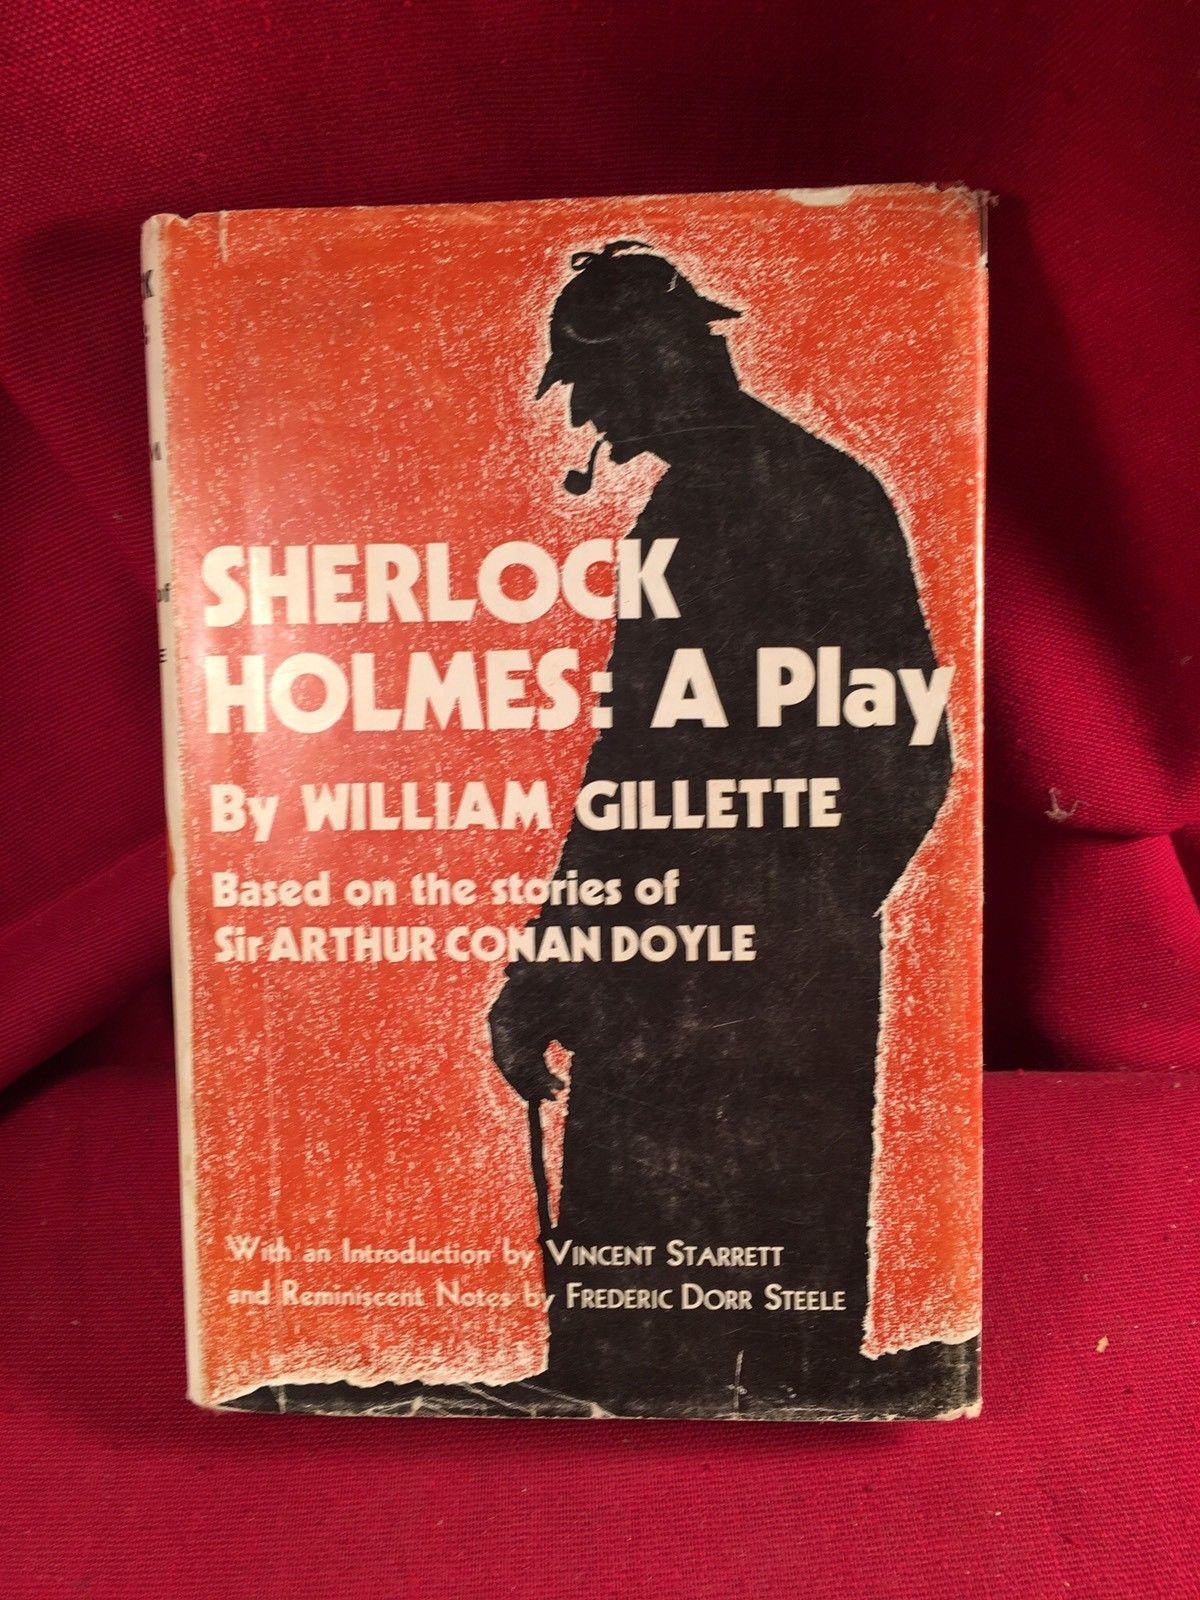 SHERLOCK HOLMES: A PLAY by William Gillette 1/1000 copies